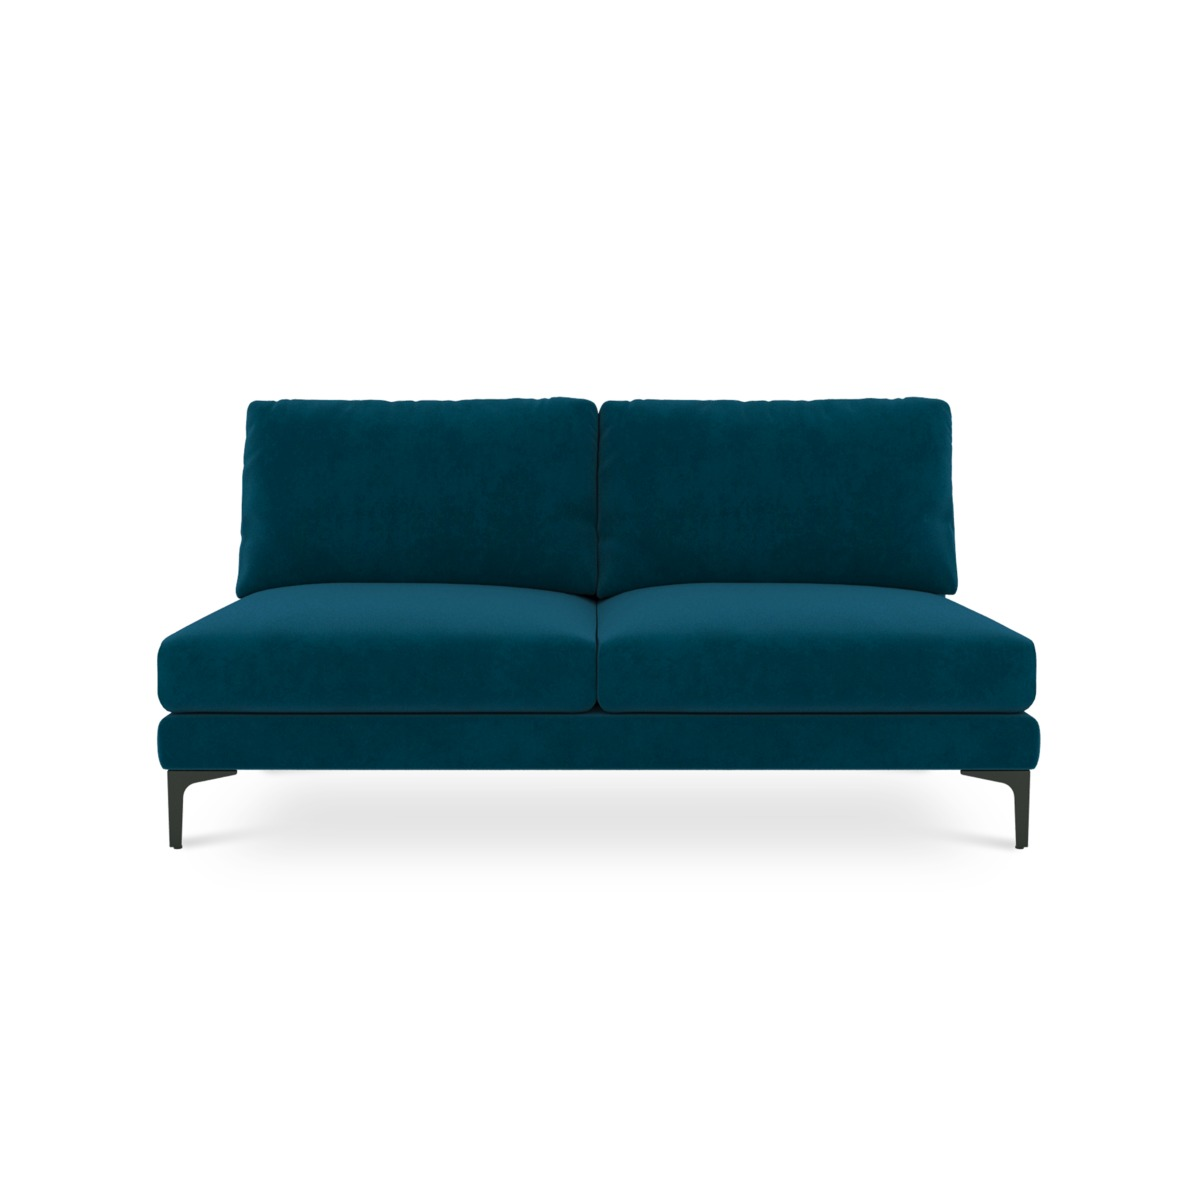 Adams Armless 2-Seater, Turquoise (Black Leg)